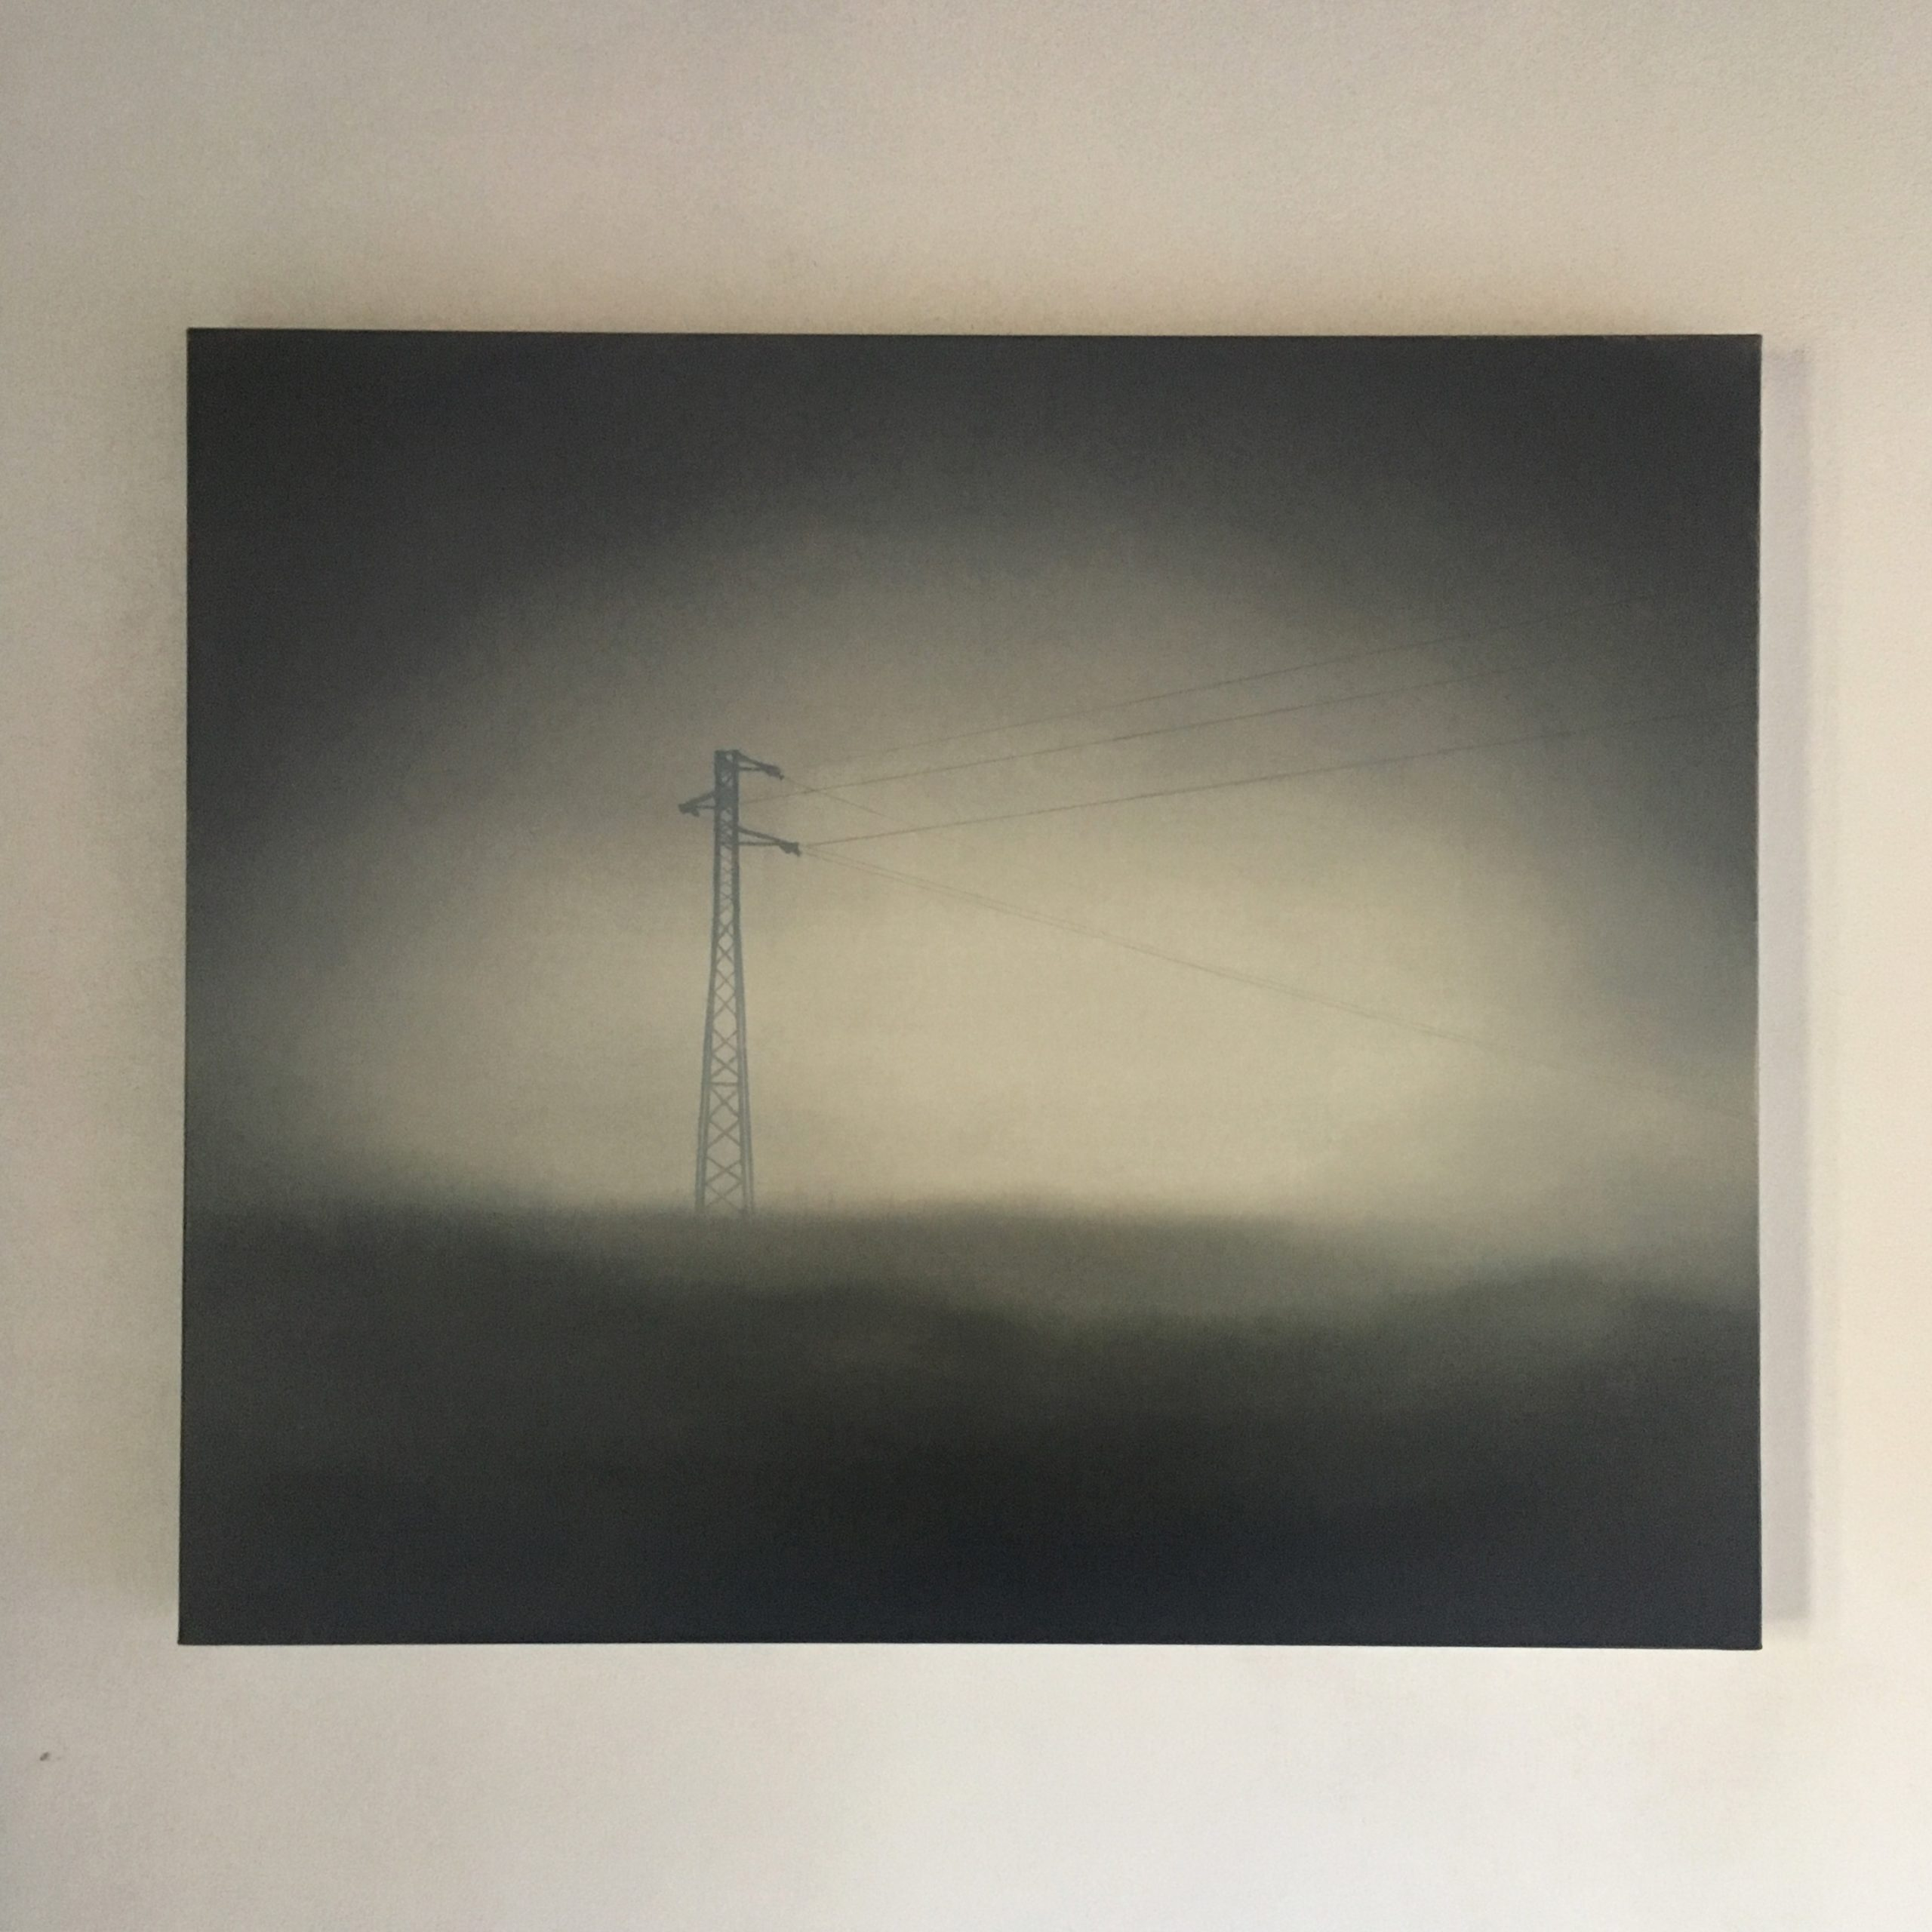 T#131-2019, oil and graphite on canvas, 50x60cm (private collection)